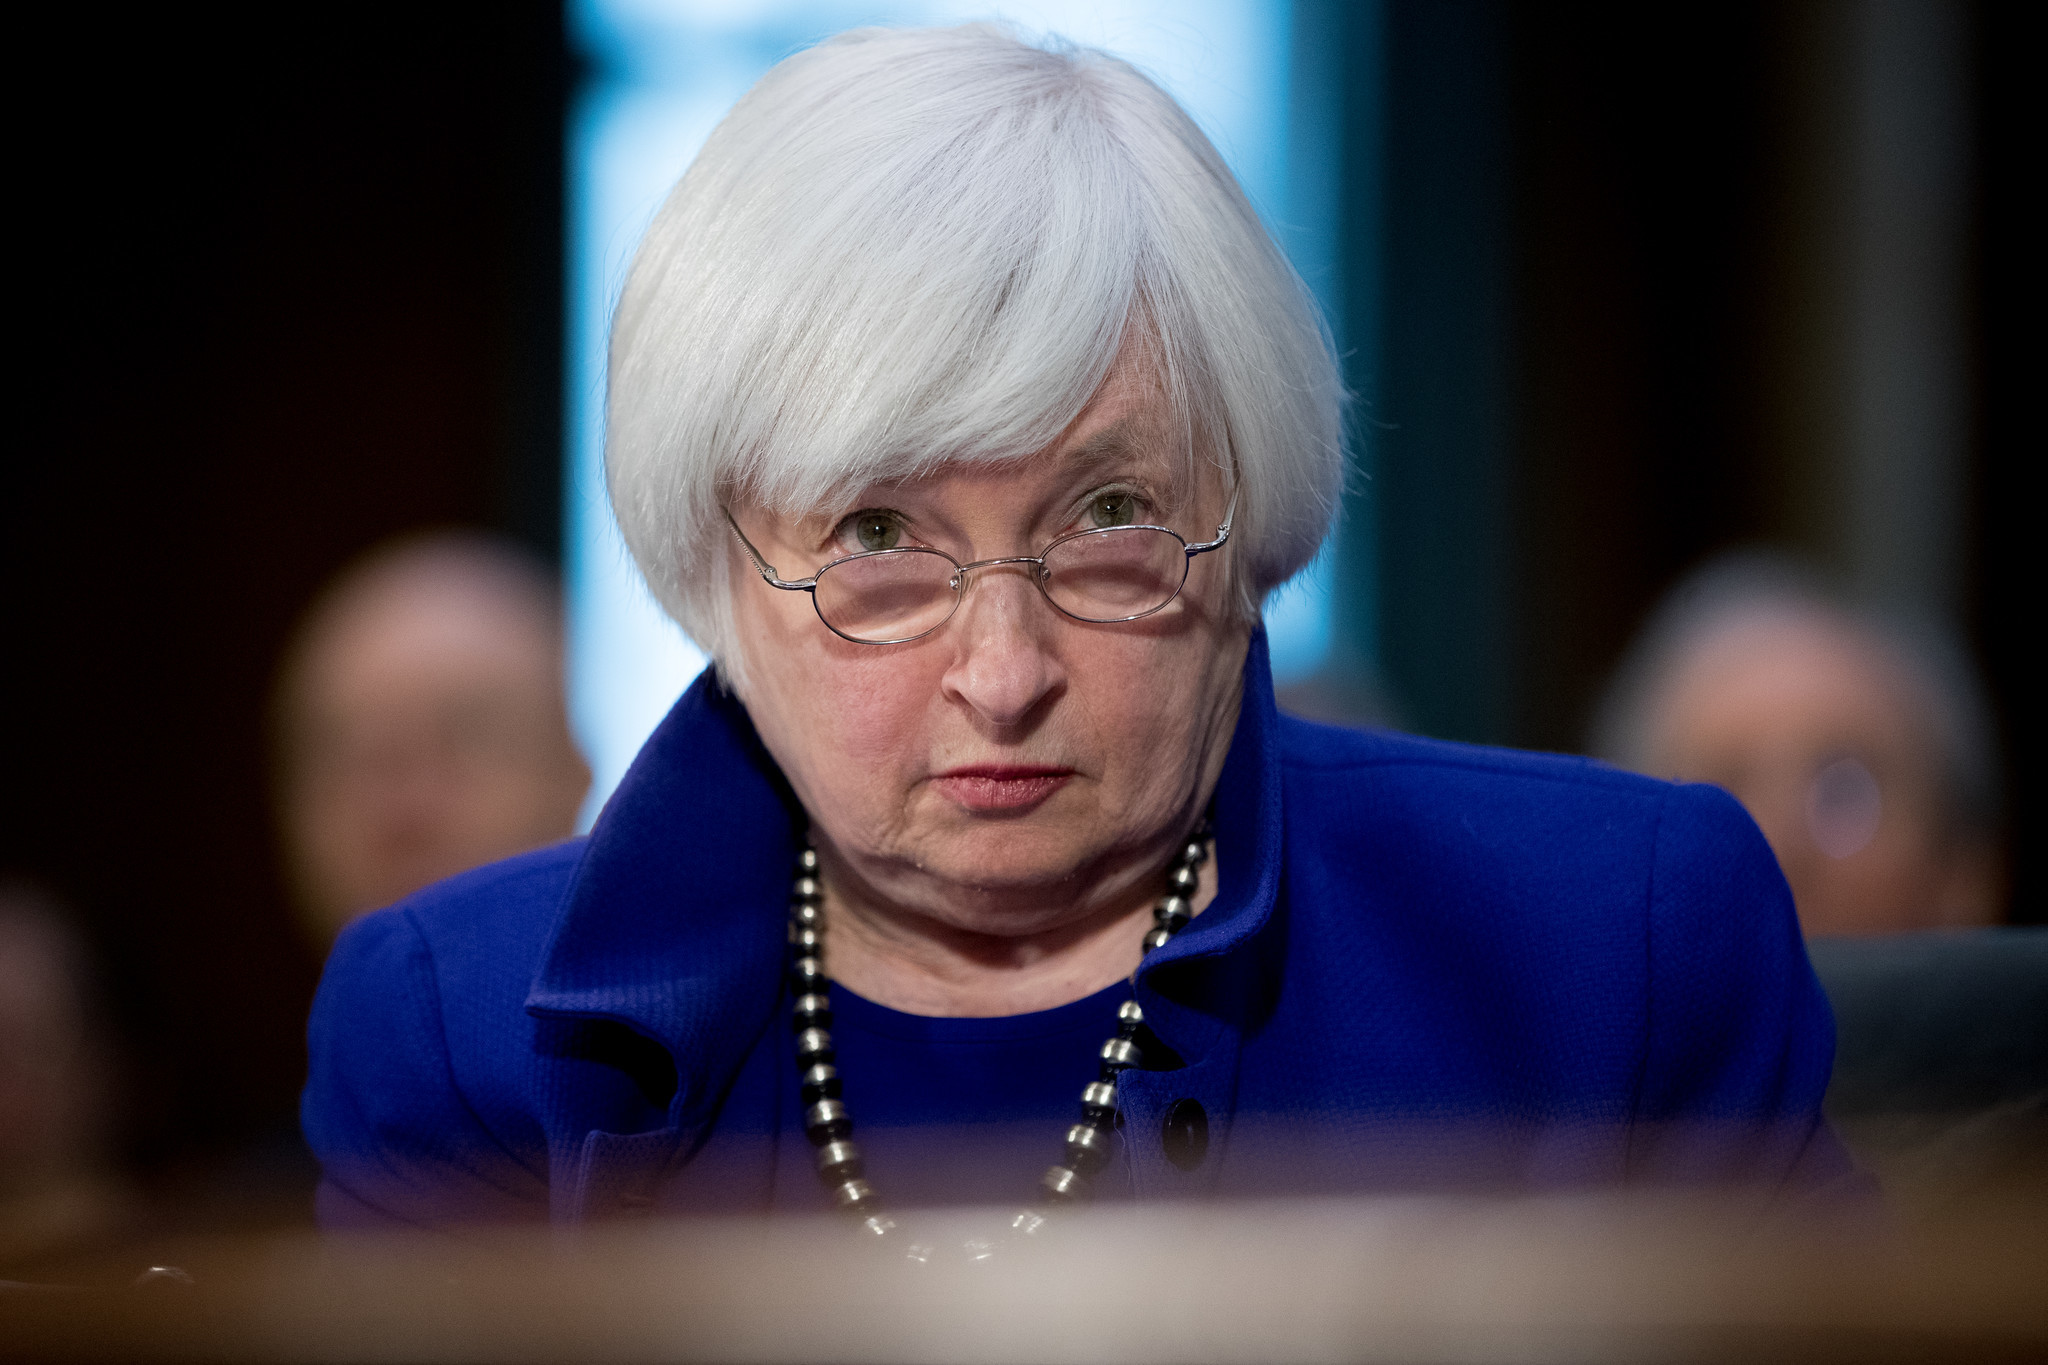 Fed's Yellen gives a strong signal that an interest rate hike is coming